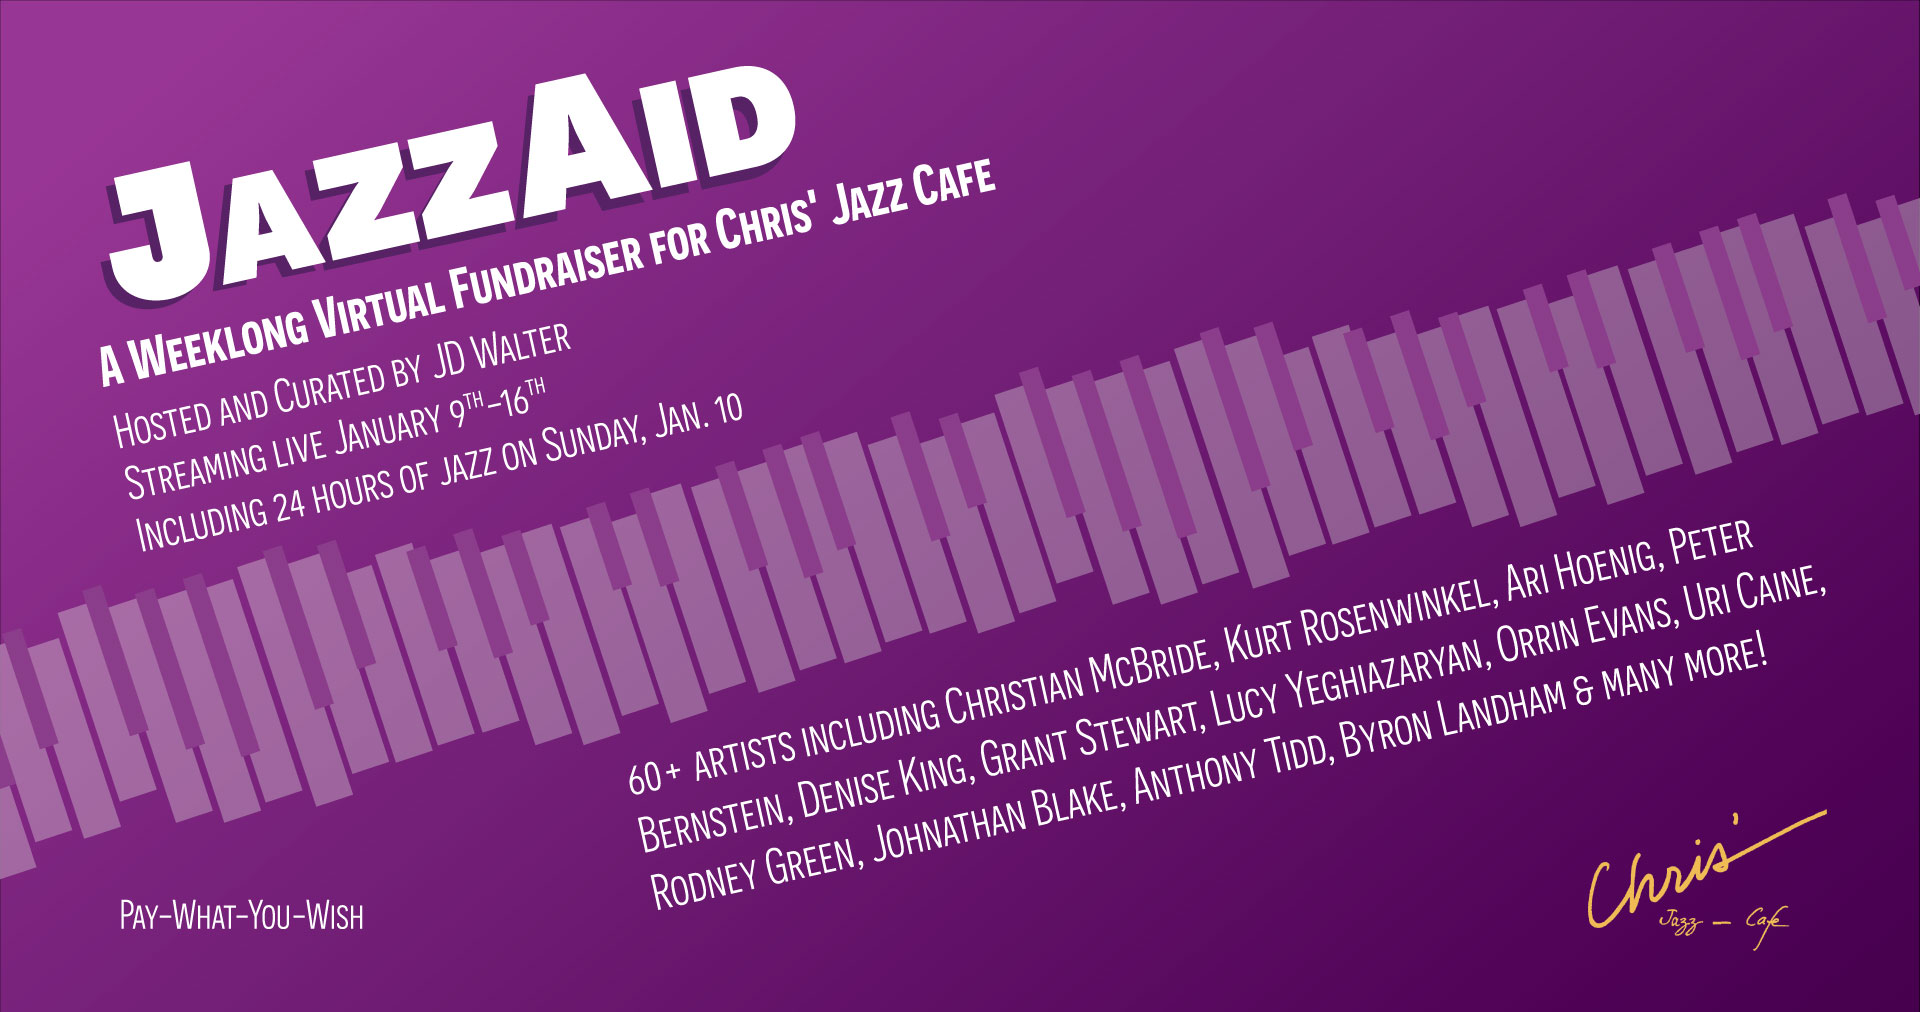 JazzAid - a weeklong virtual fundraiser for Chris' Jazz Cafe